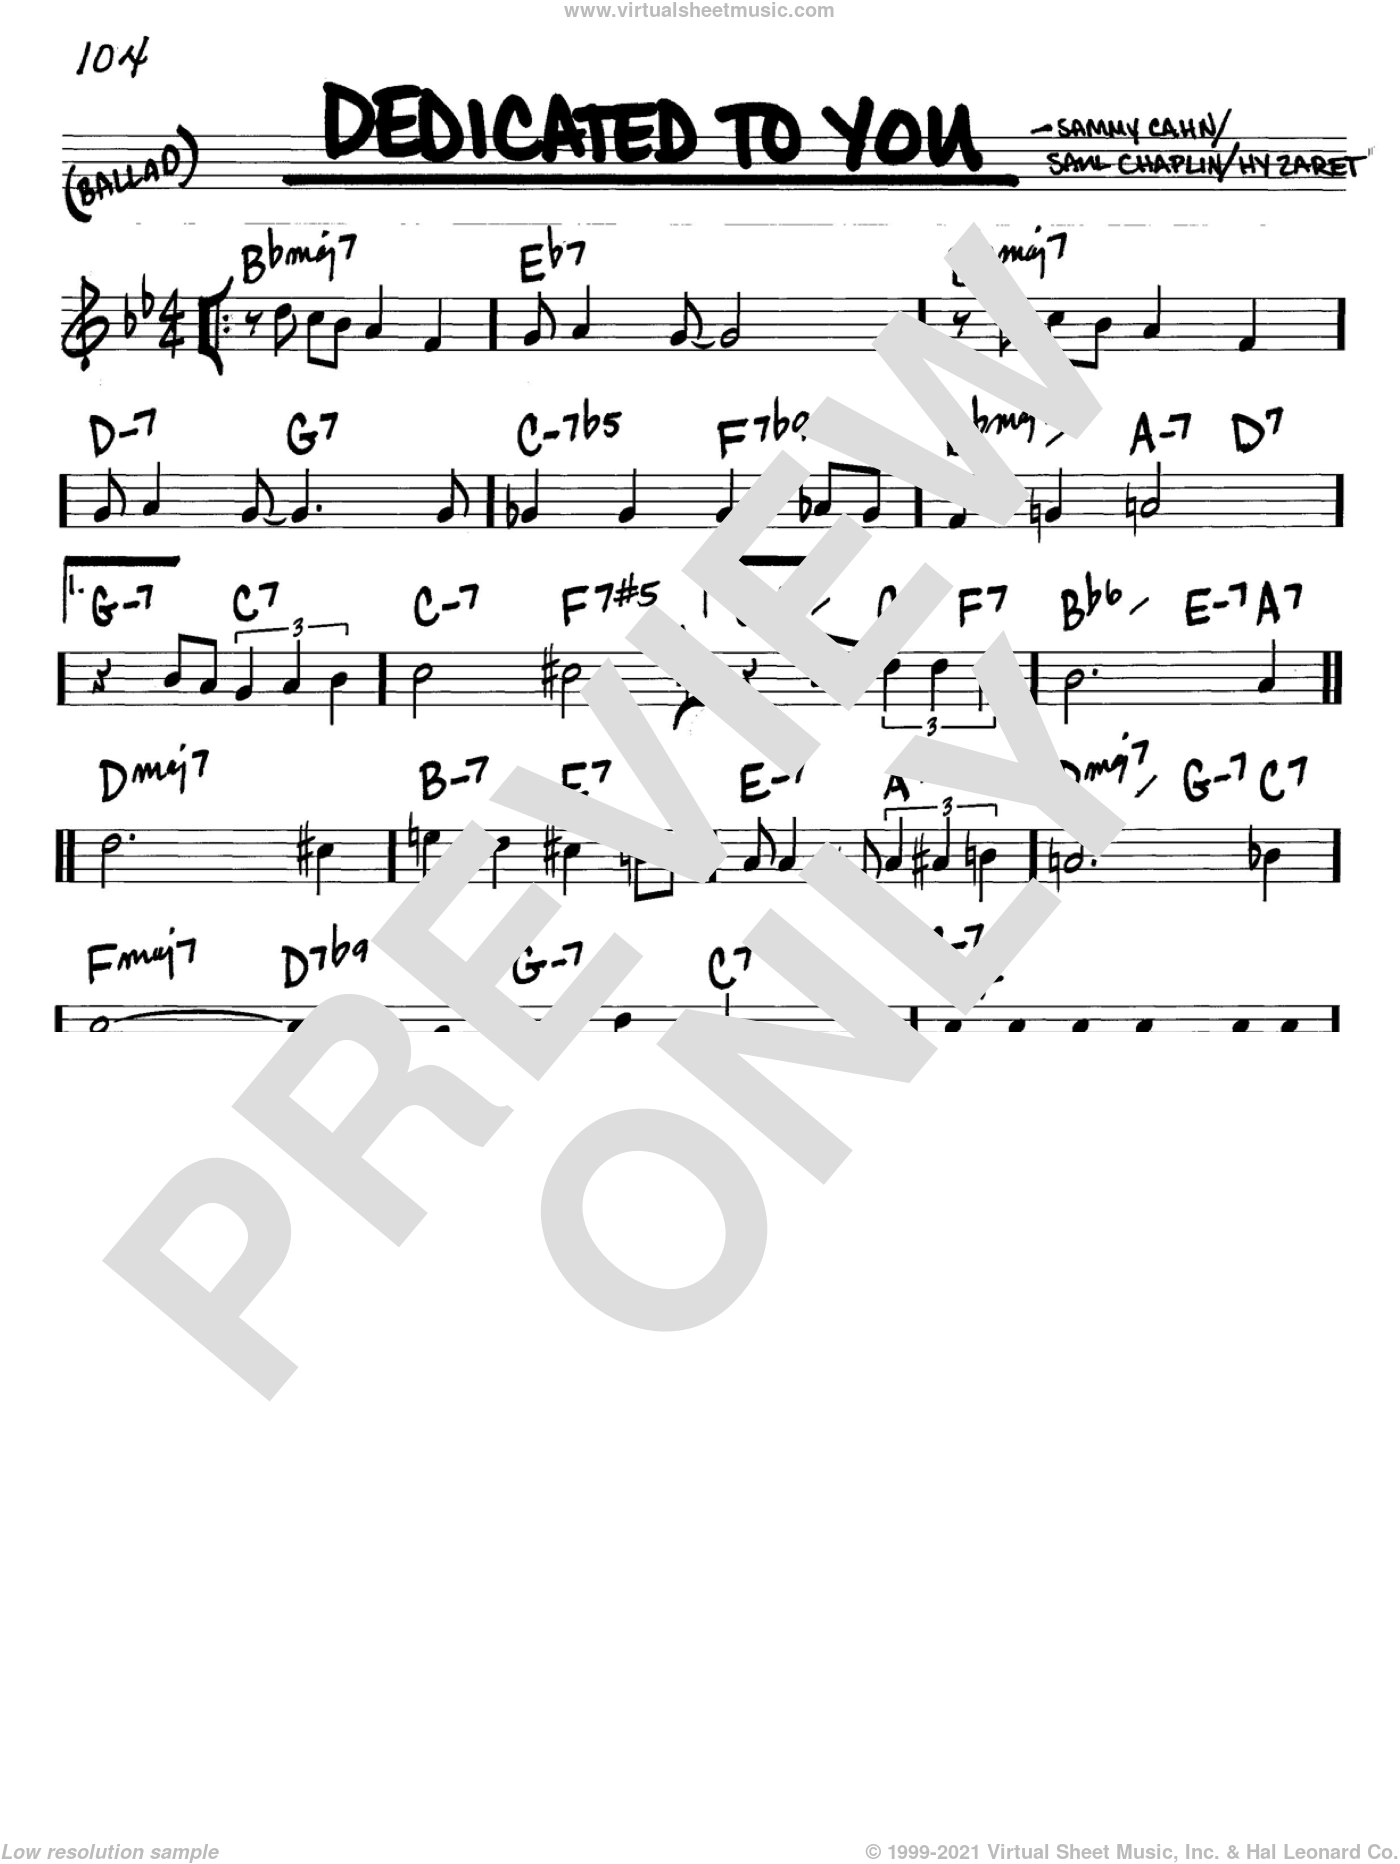 Dedicated To You sheet music for voice and other instruments (C) by Saul Chaplin, Hy Zaret and Sammy Cahn. Score Image Preview.